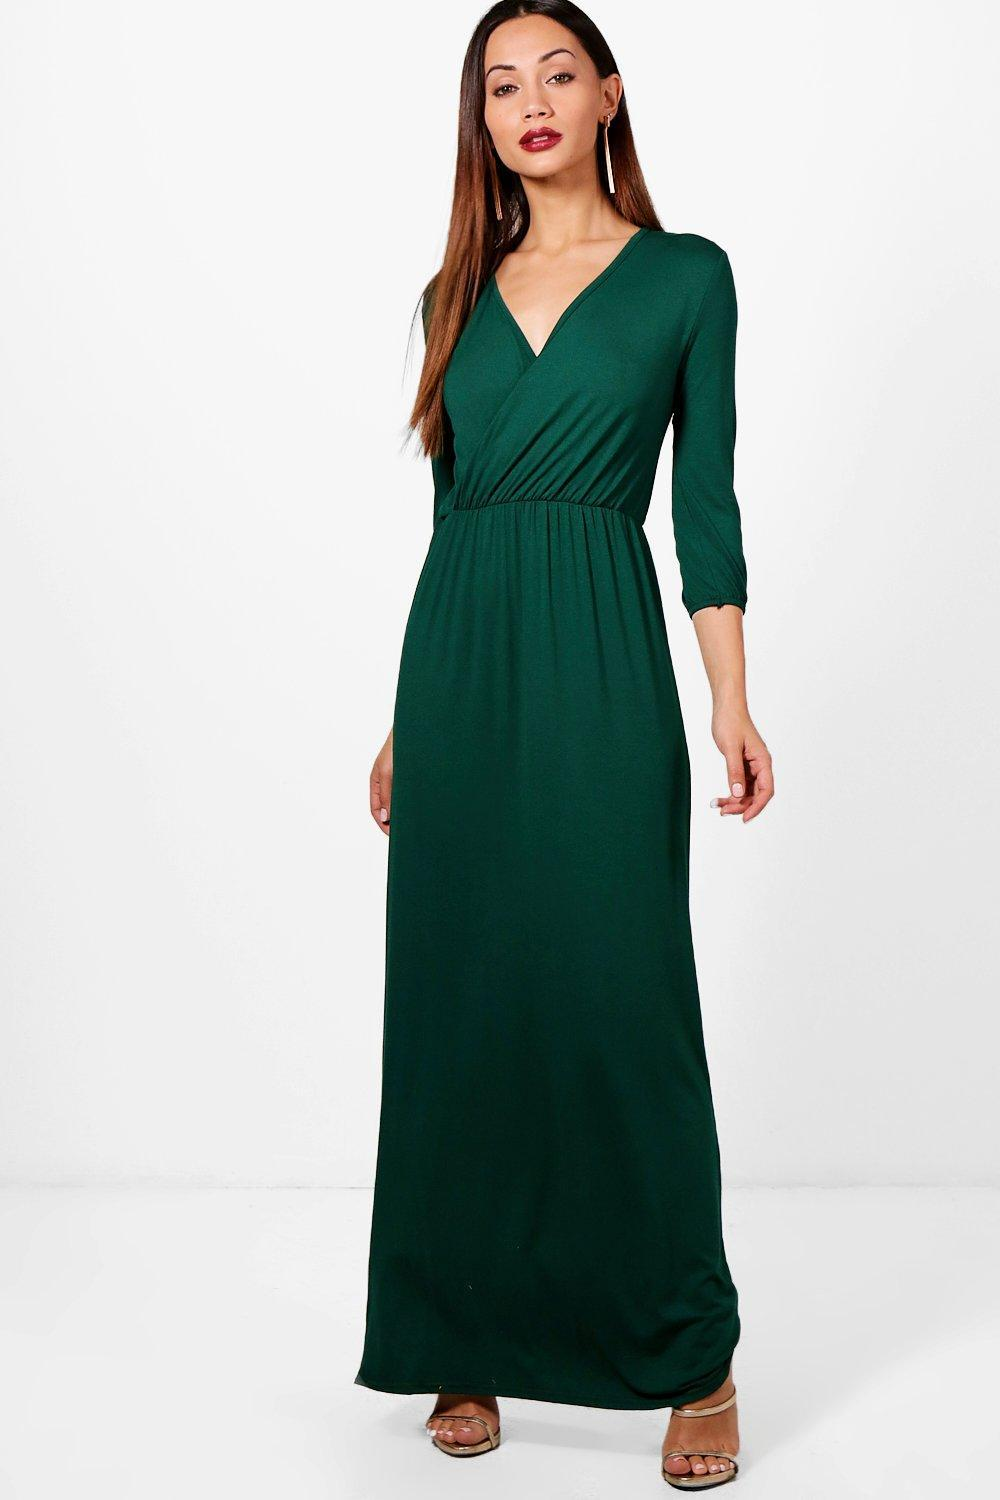 42e743bc6be Boohoo Petite Wrap Front 3 4 Sleeve Maxi Dress in Blue - Lyst